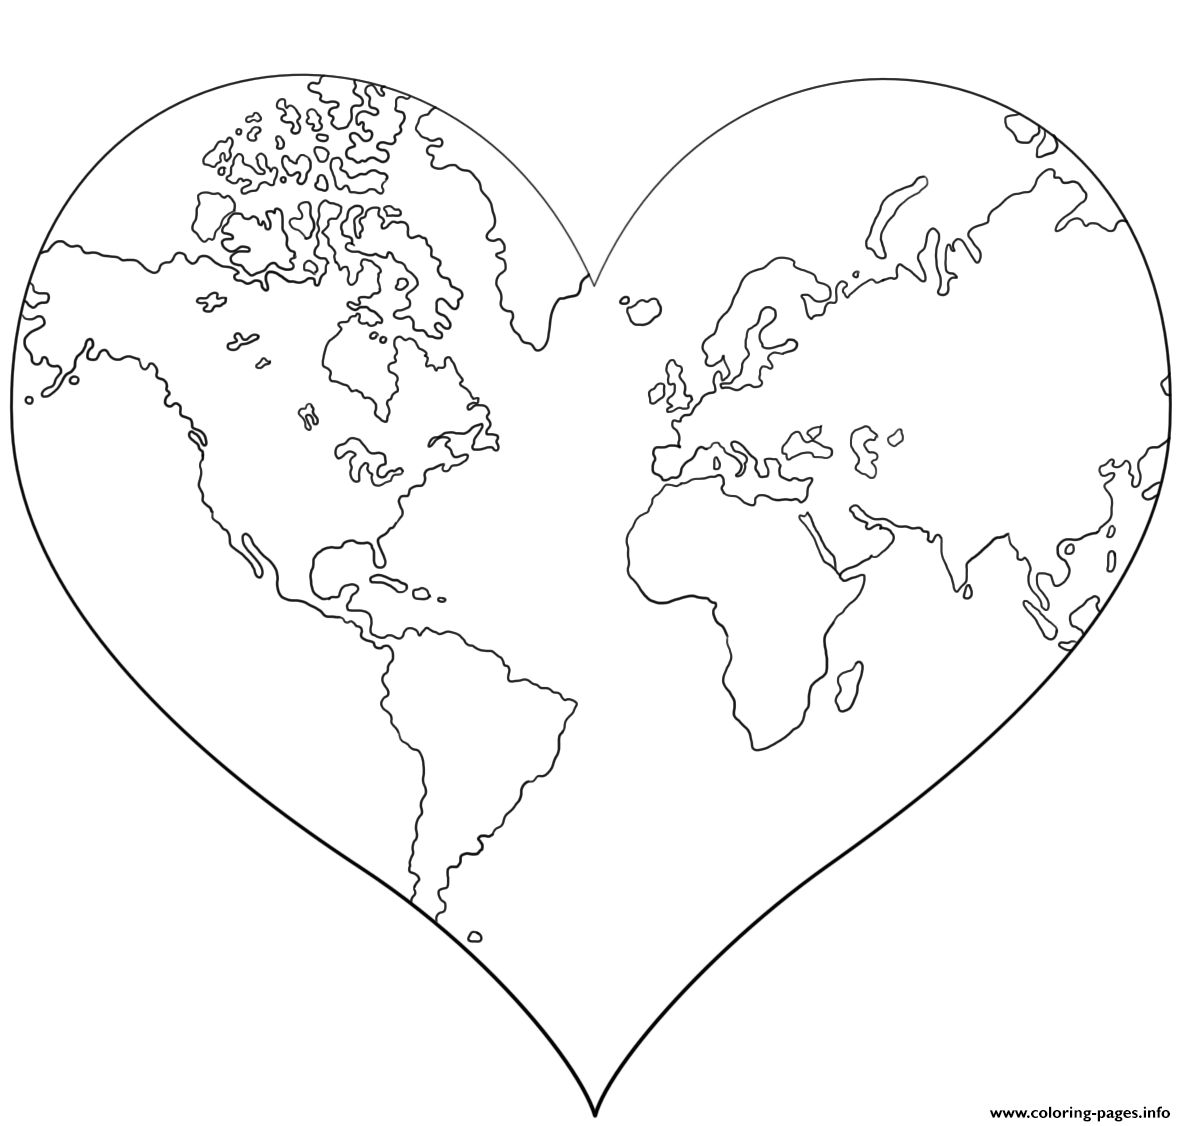 Heart Shaped Earth coloring pages